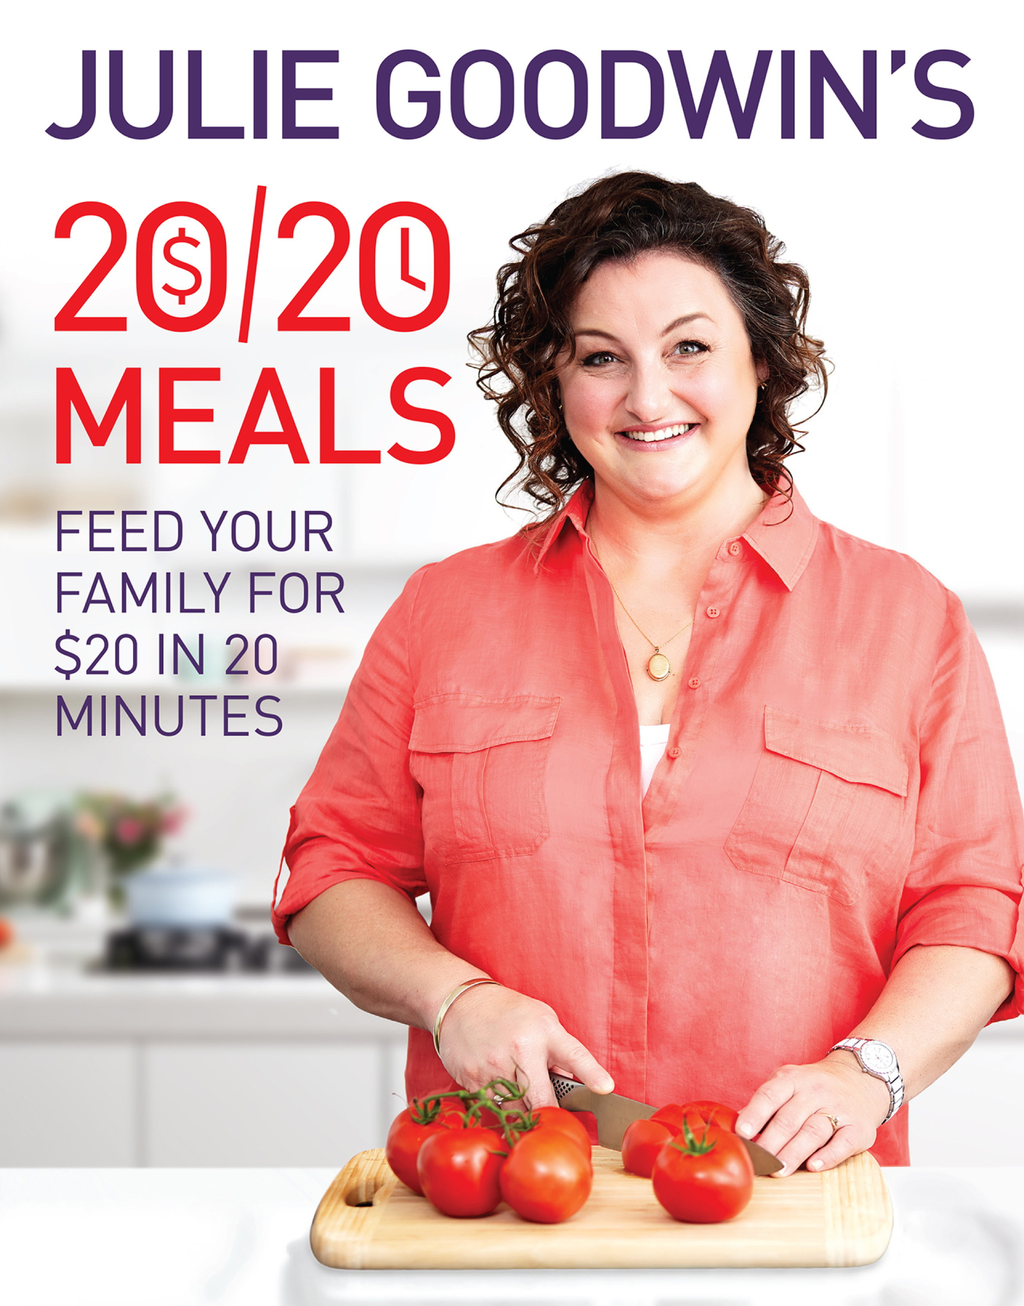 Julie Goodwin's 20/20 Meals Feed your family for $20 in 20 minutes